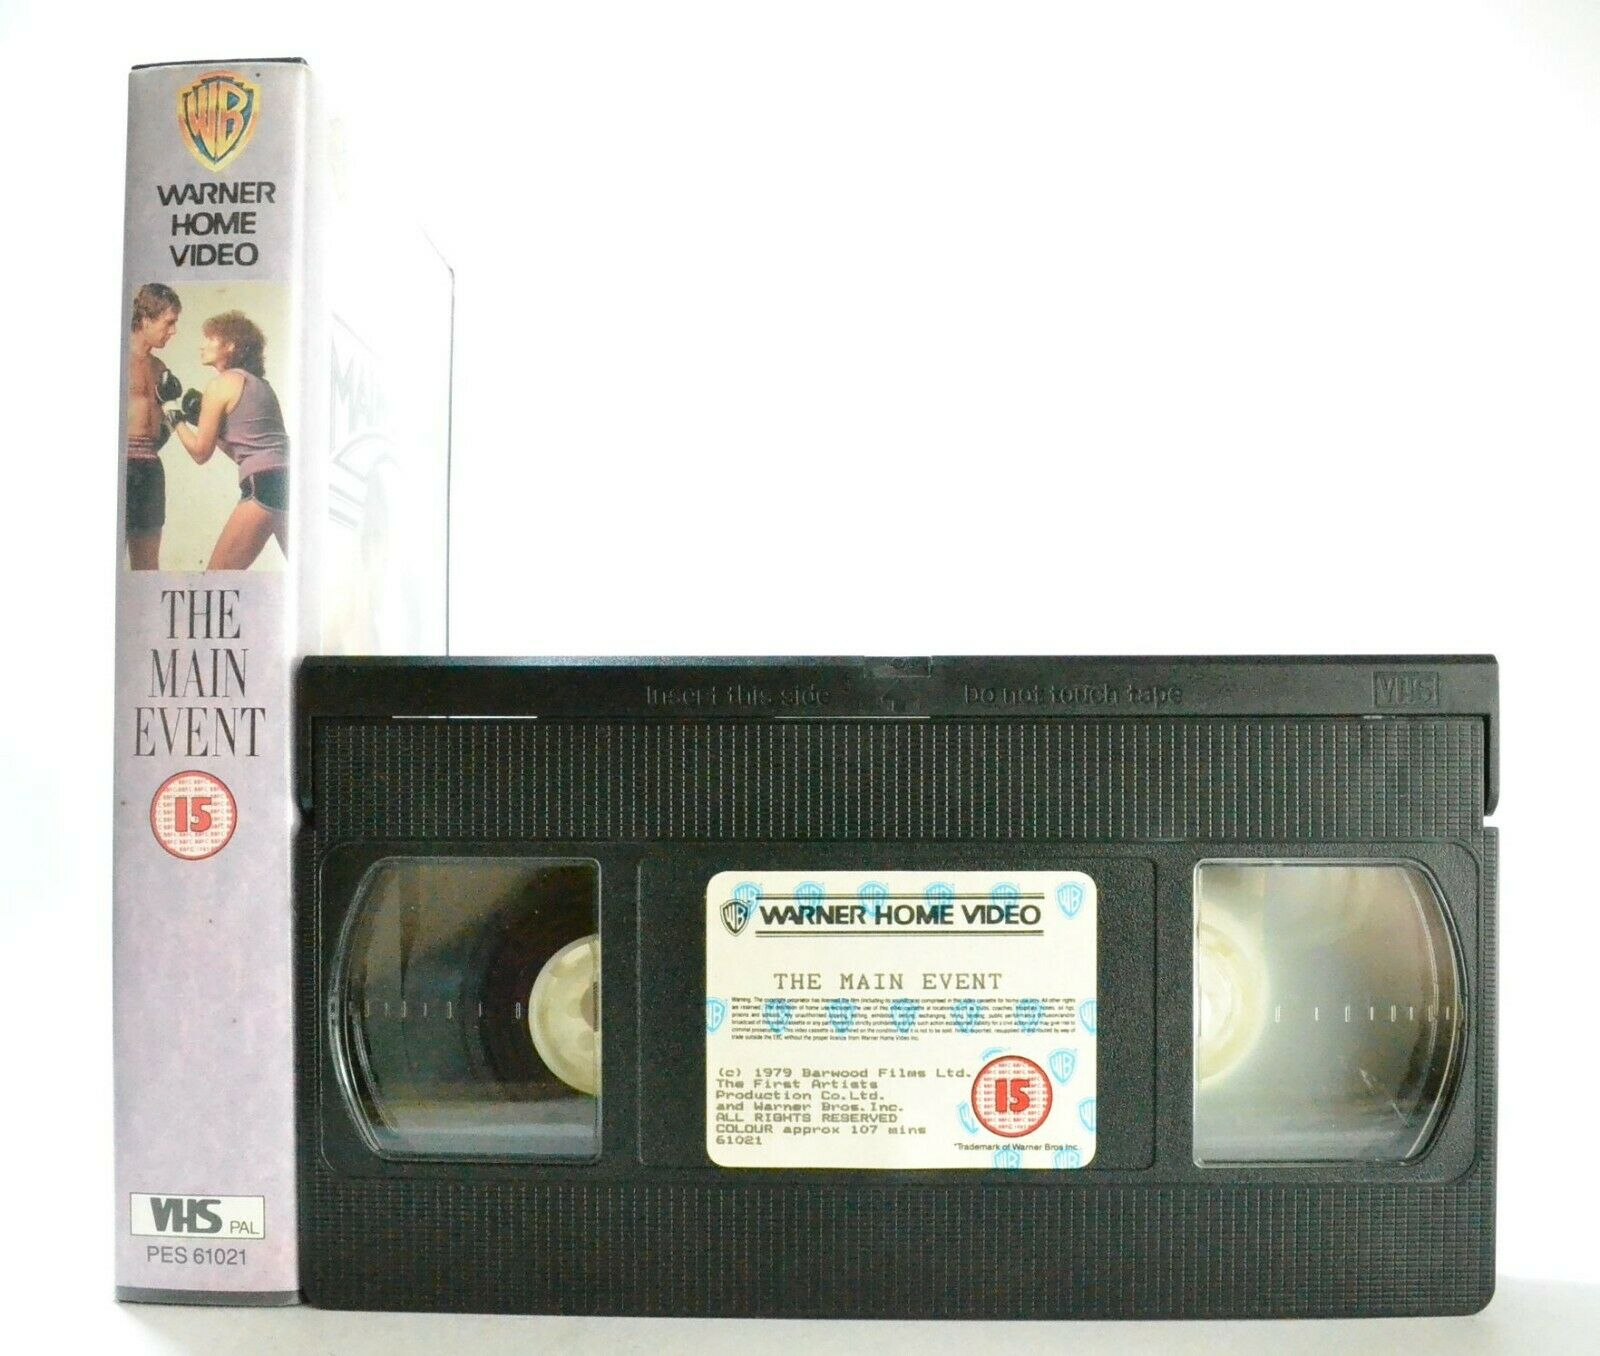 The Main Event: A Glove Story - Romantic Comedy (1979) - B.Streisand - Pal VHS